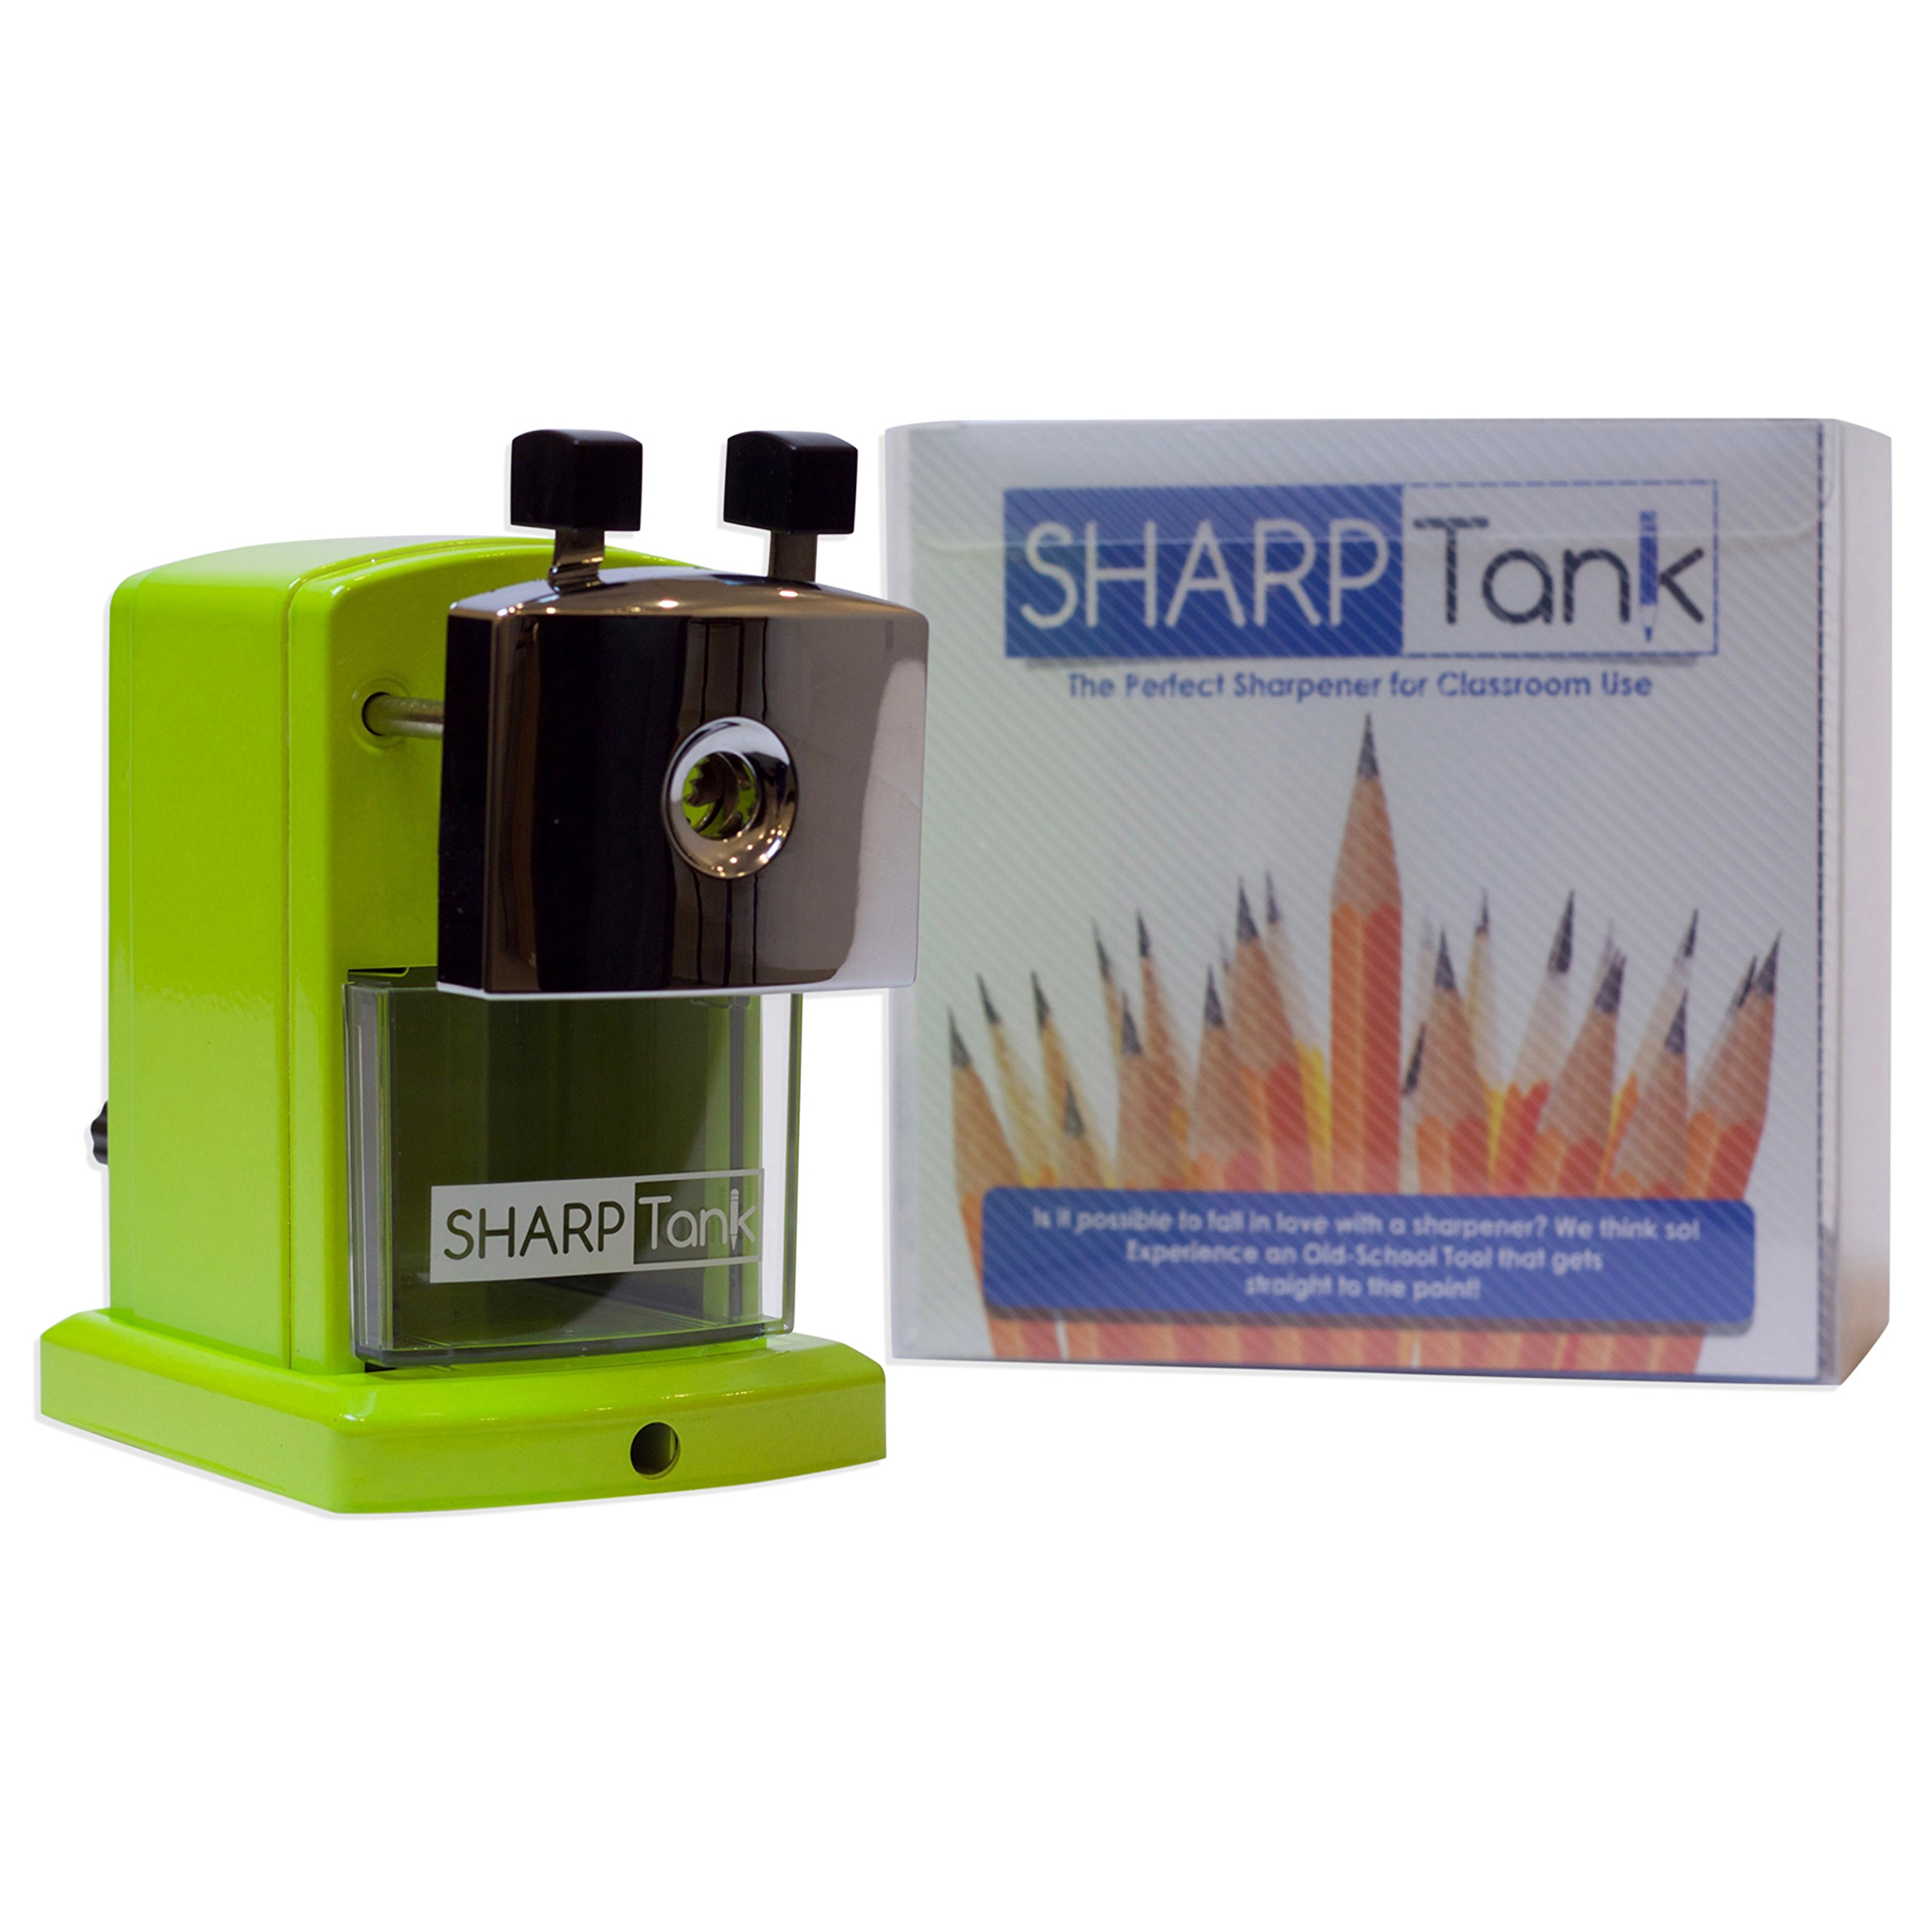 SharpTank - Portable Pencil Sharpener (Key Lime Green) - Compact & Quiet Classroom Sharpener That Gets Straight to The Point! by SHARP TANK (Image #7)